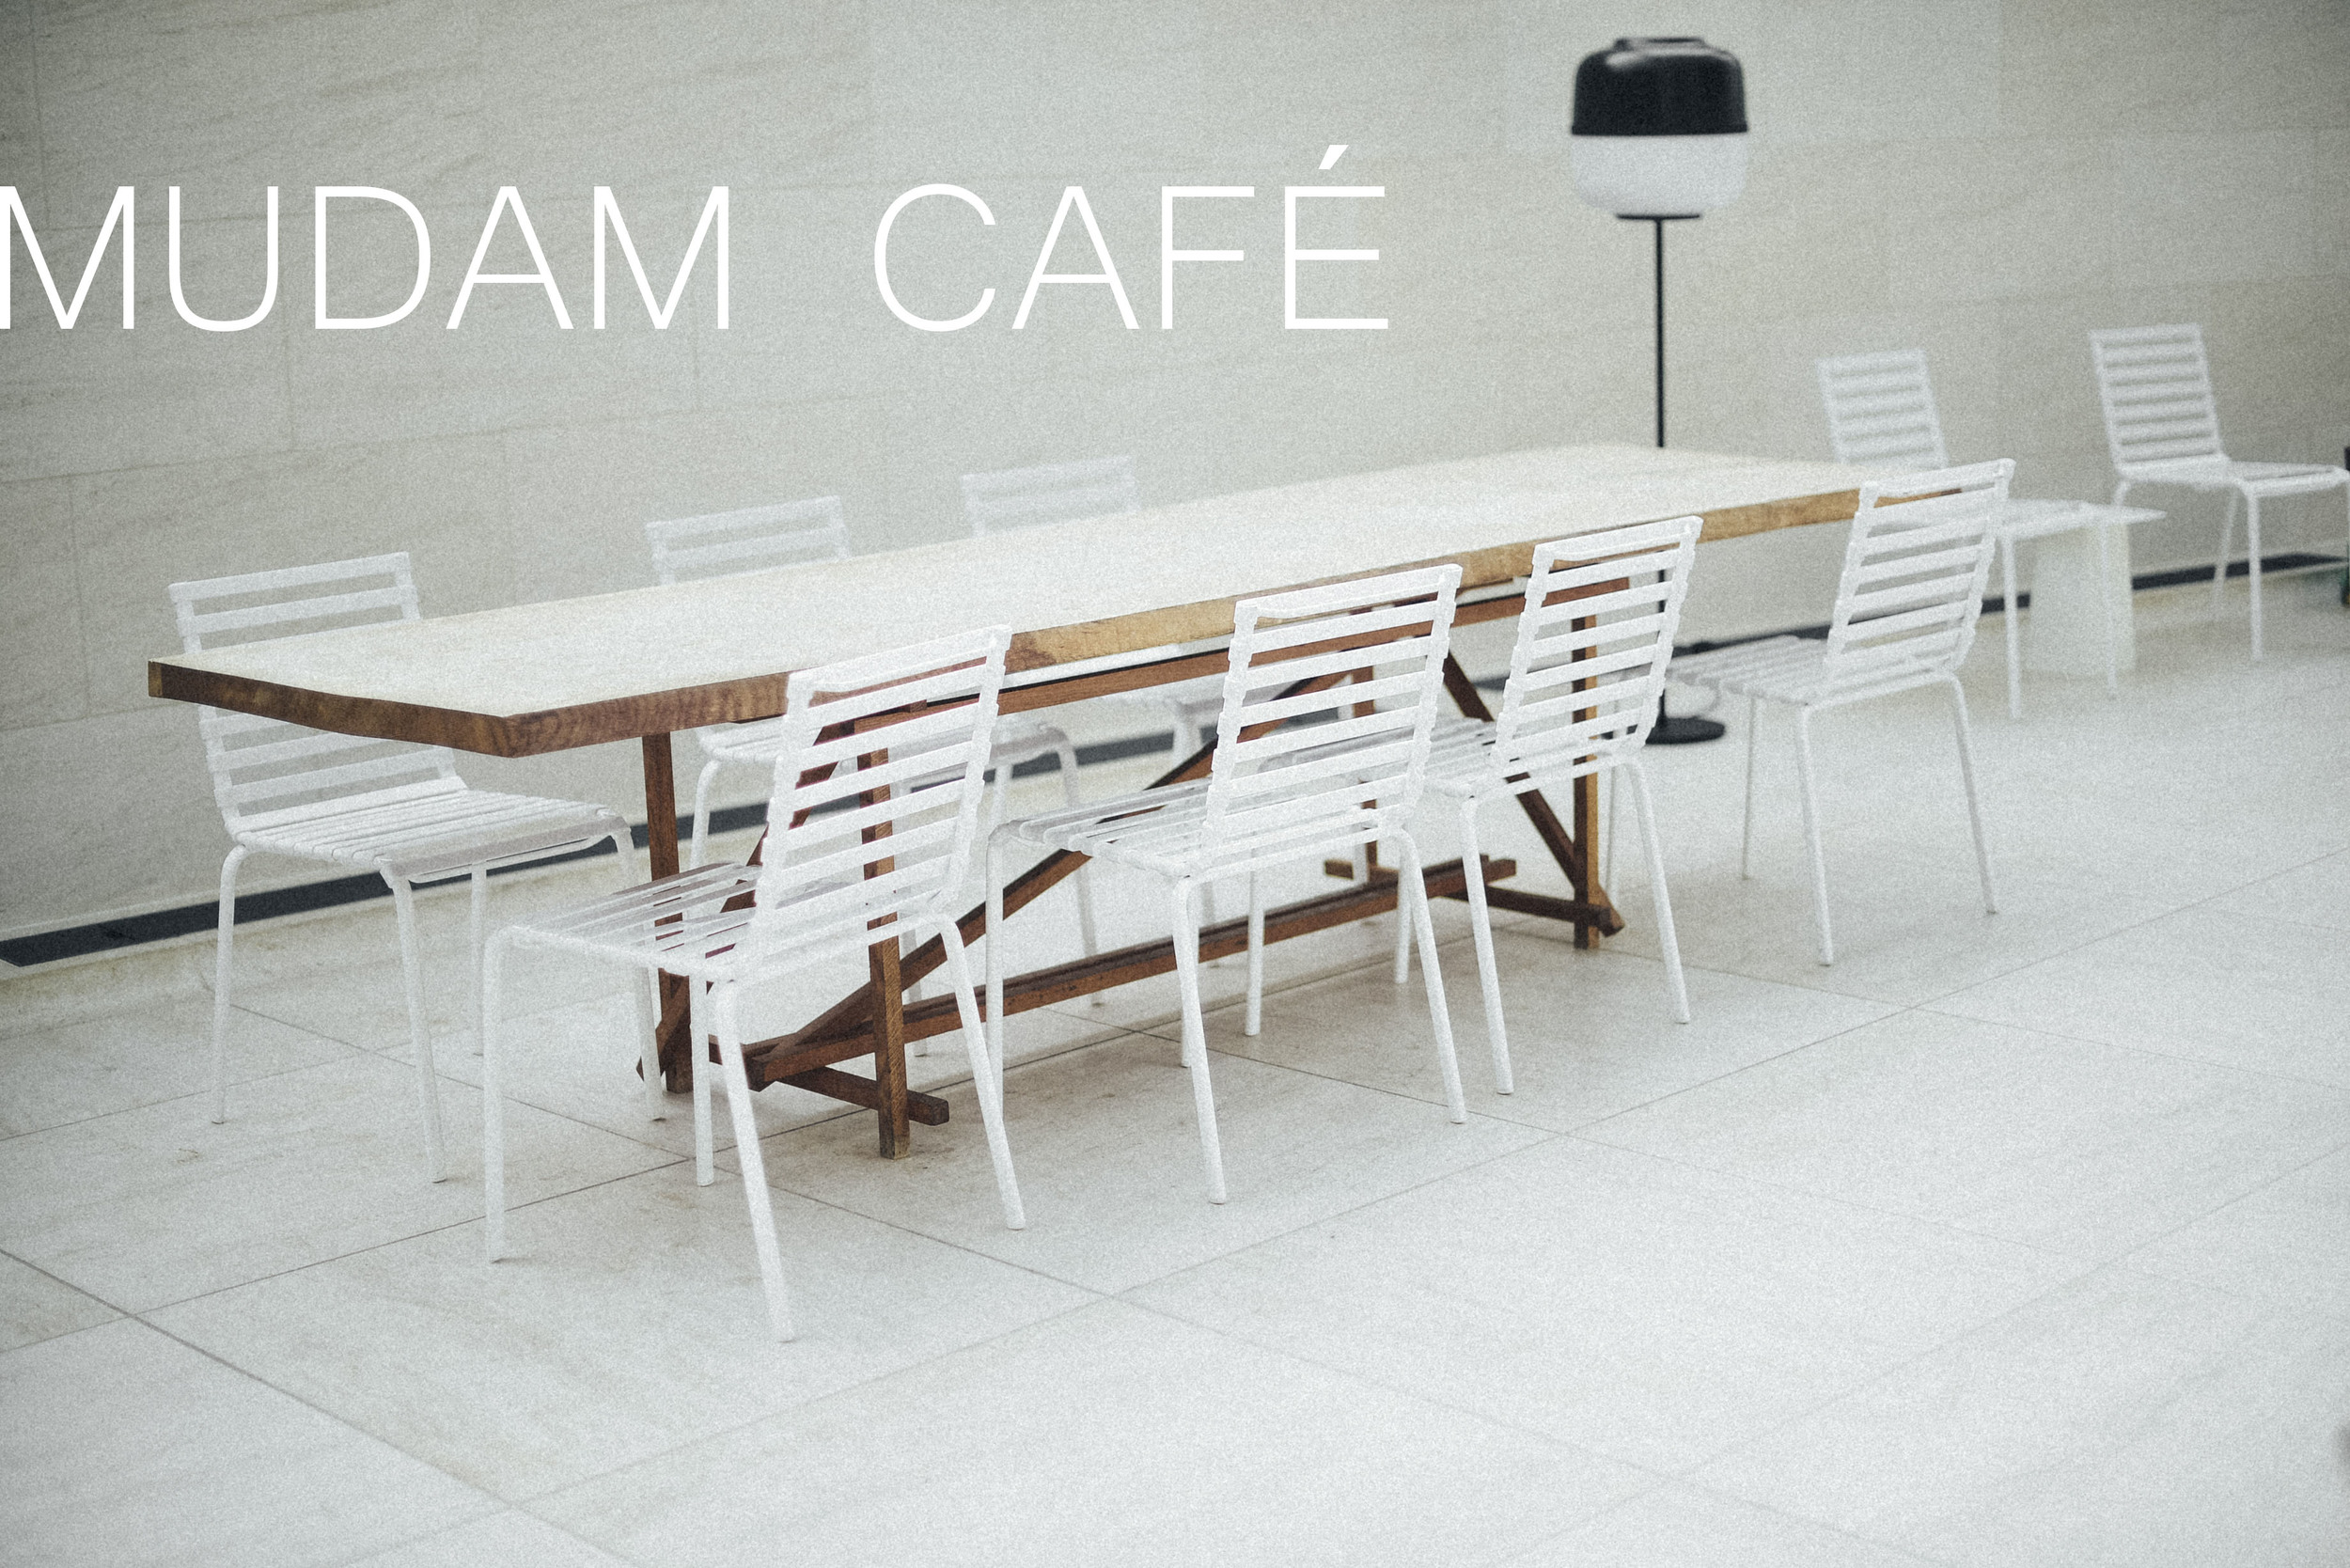 MUDAM LUXEMBOURG CAFE FOOD BRUNCH drink museum